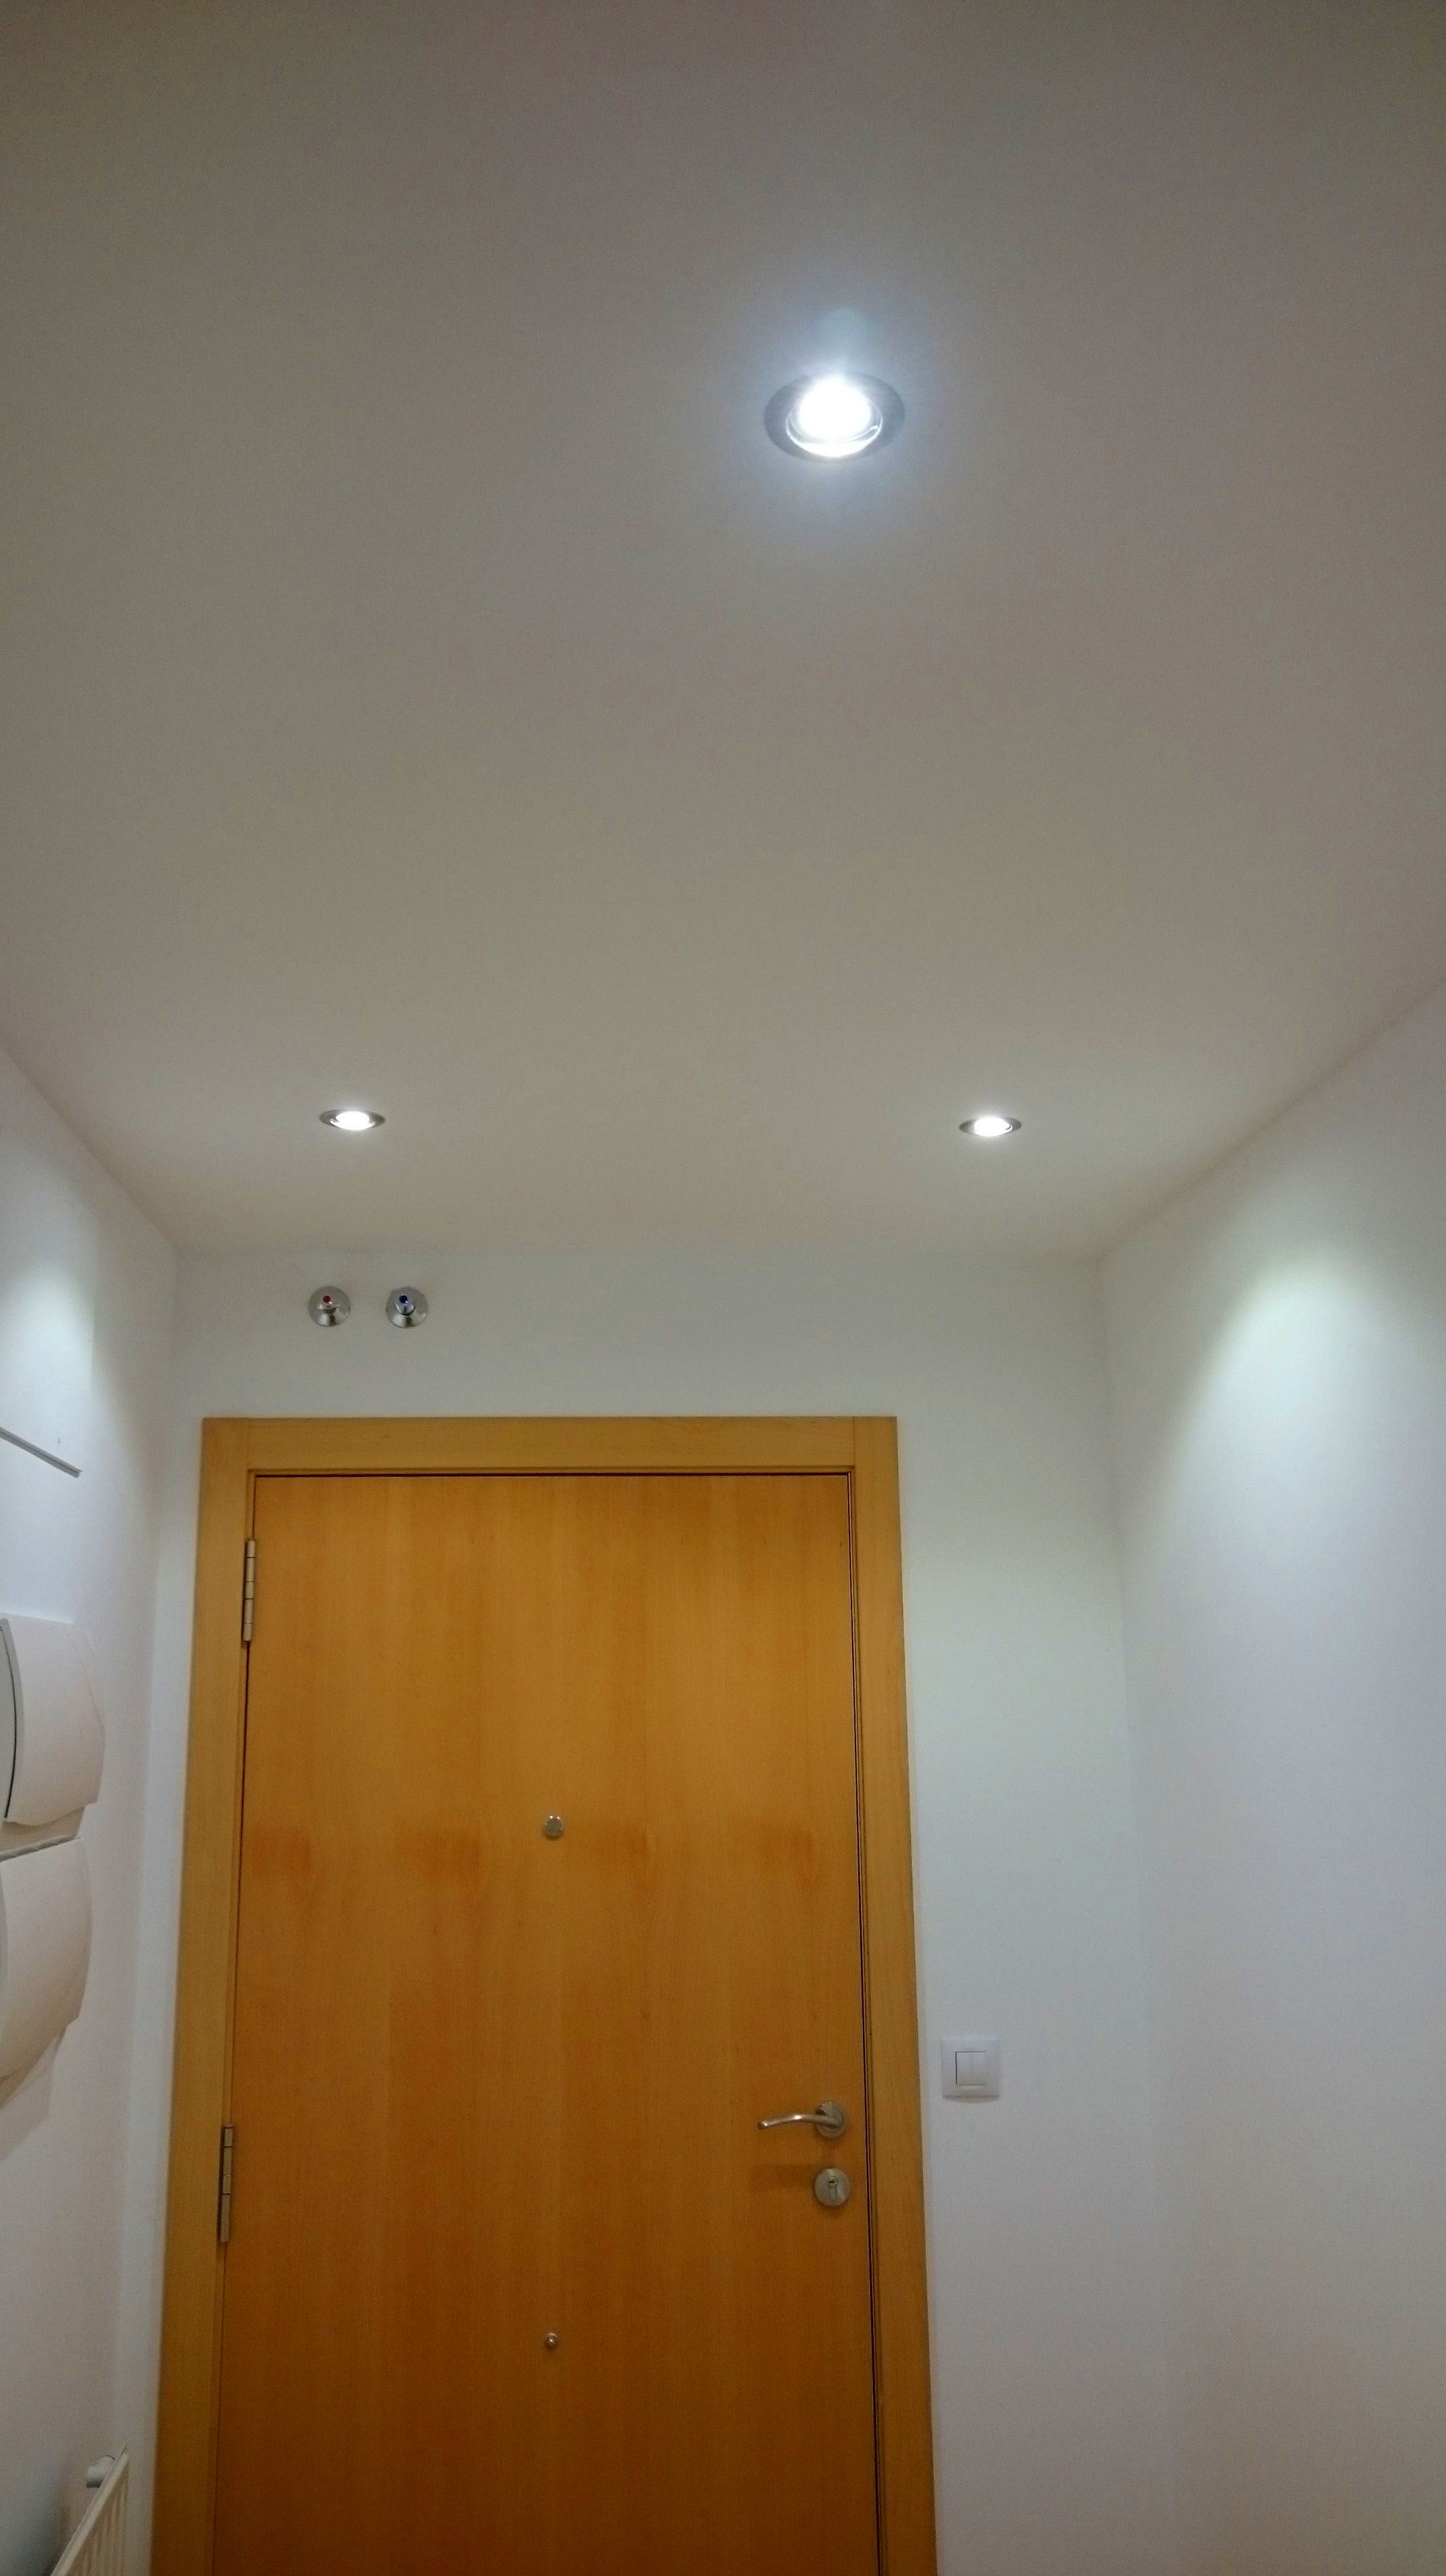 Focos led 7w en hall (color niquel satinado)